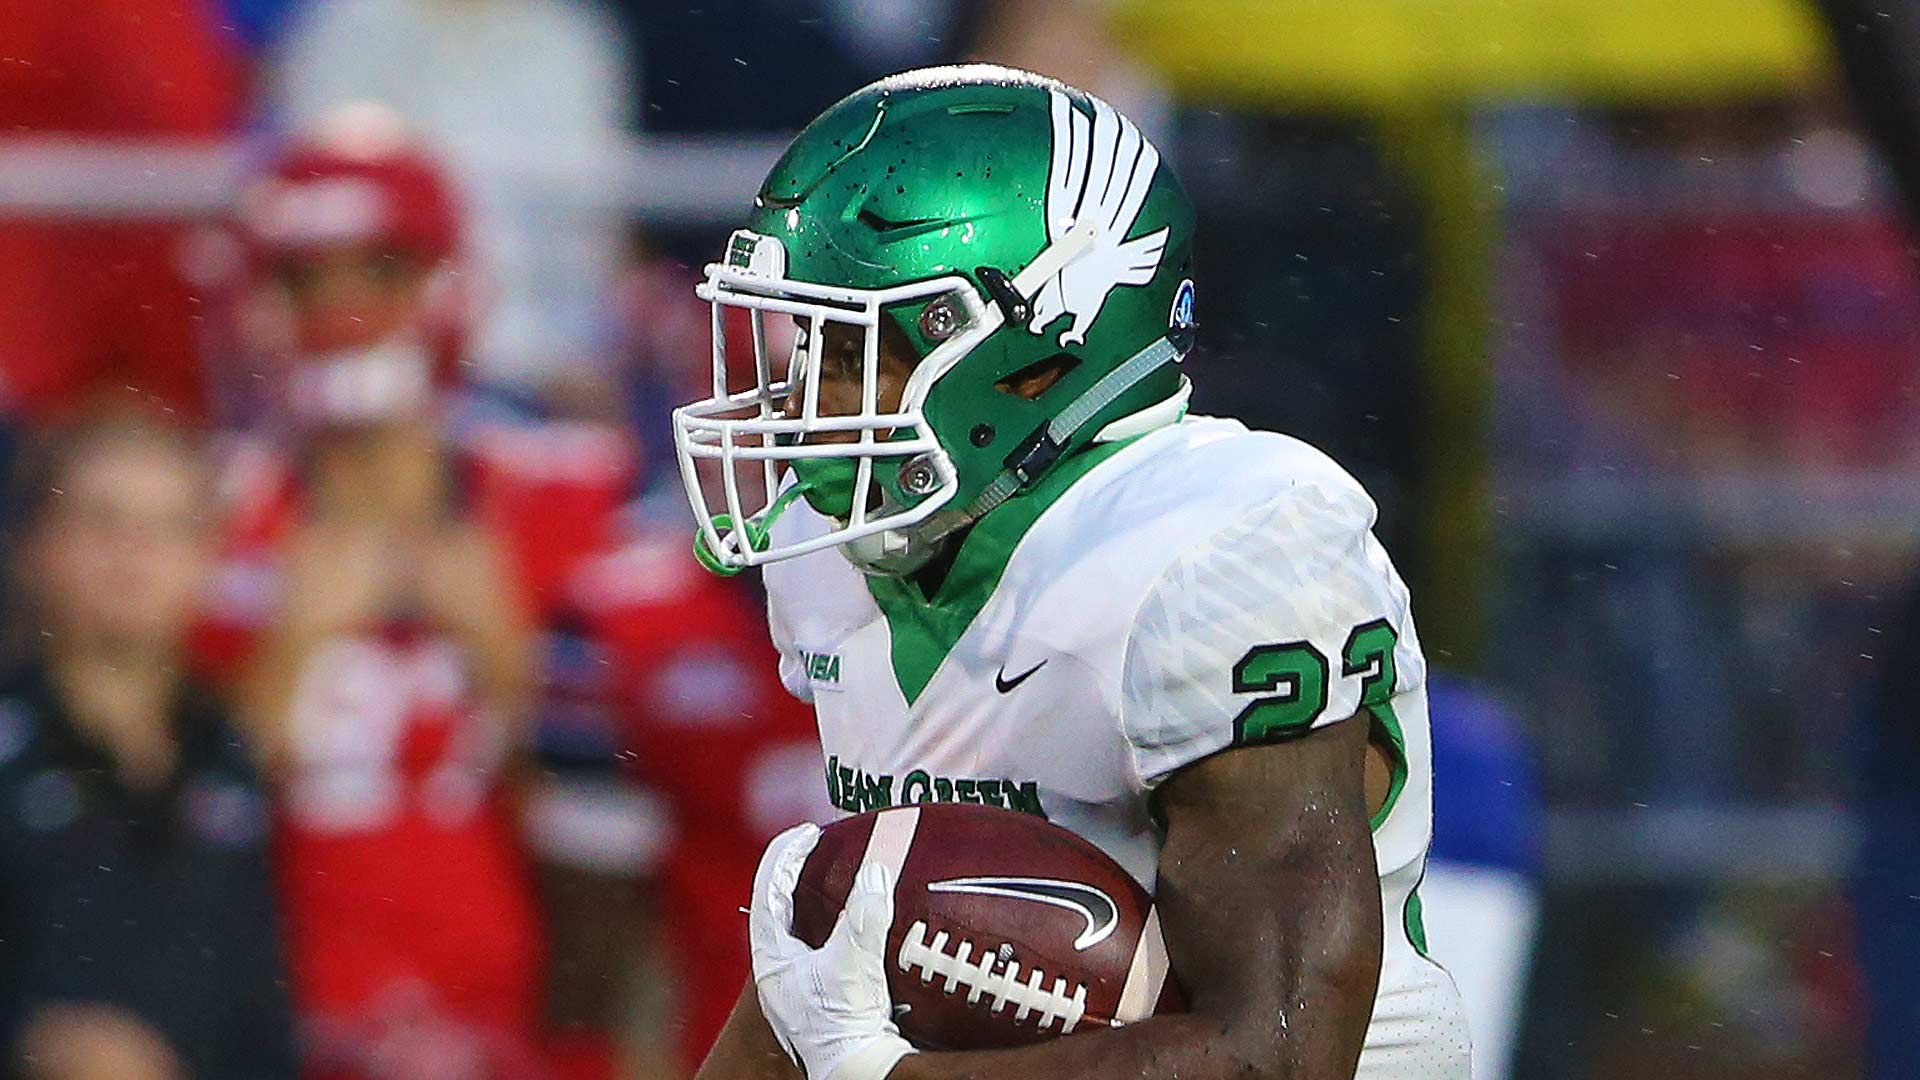 Loren Easley rushed for 177 yards and two scores against Liberty